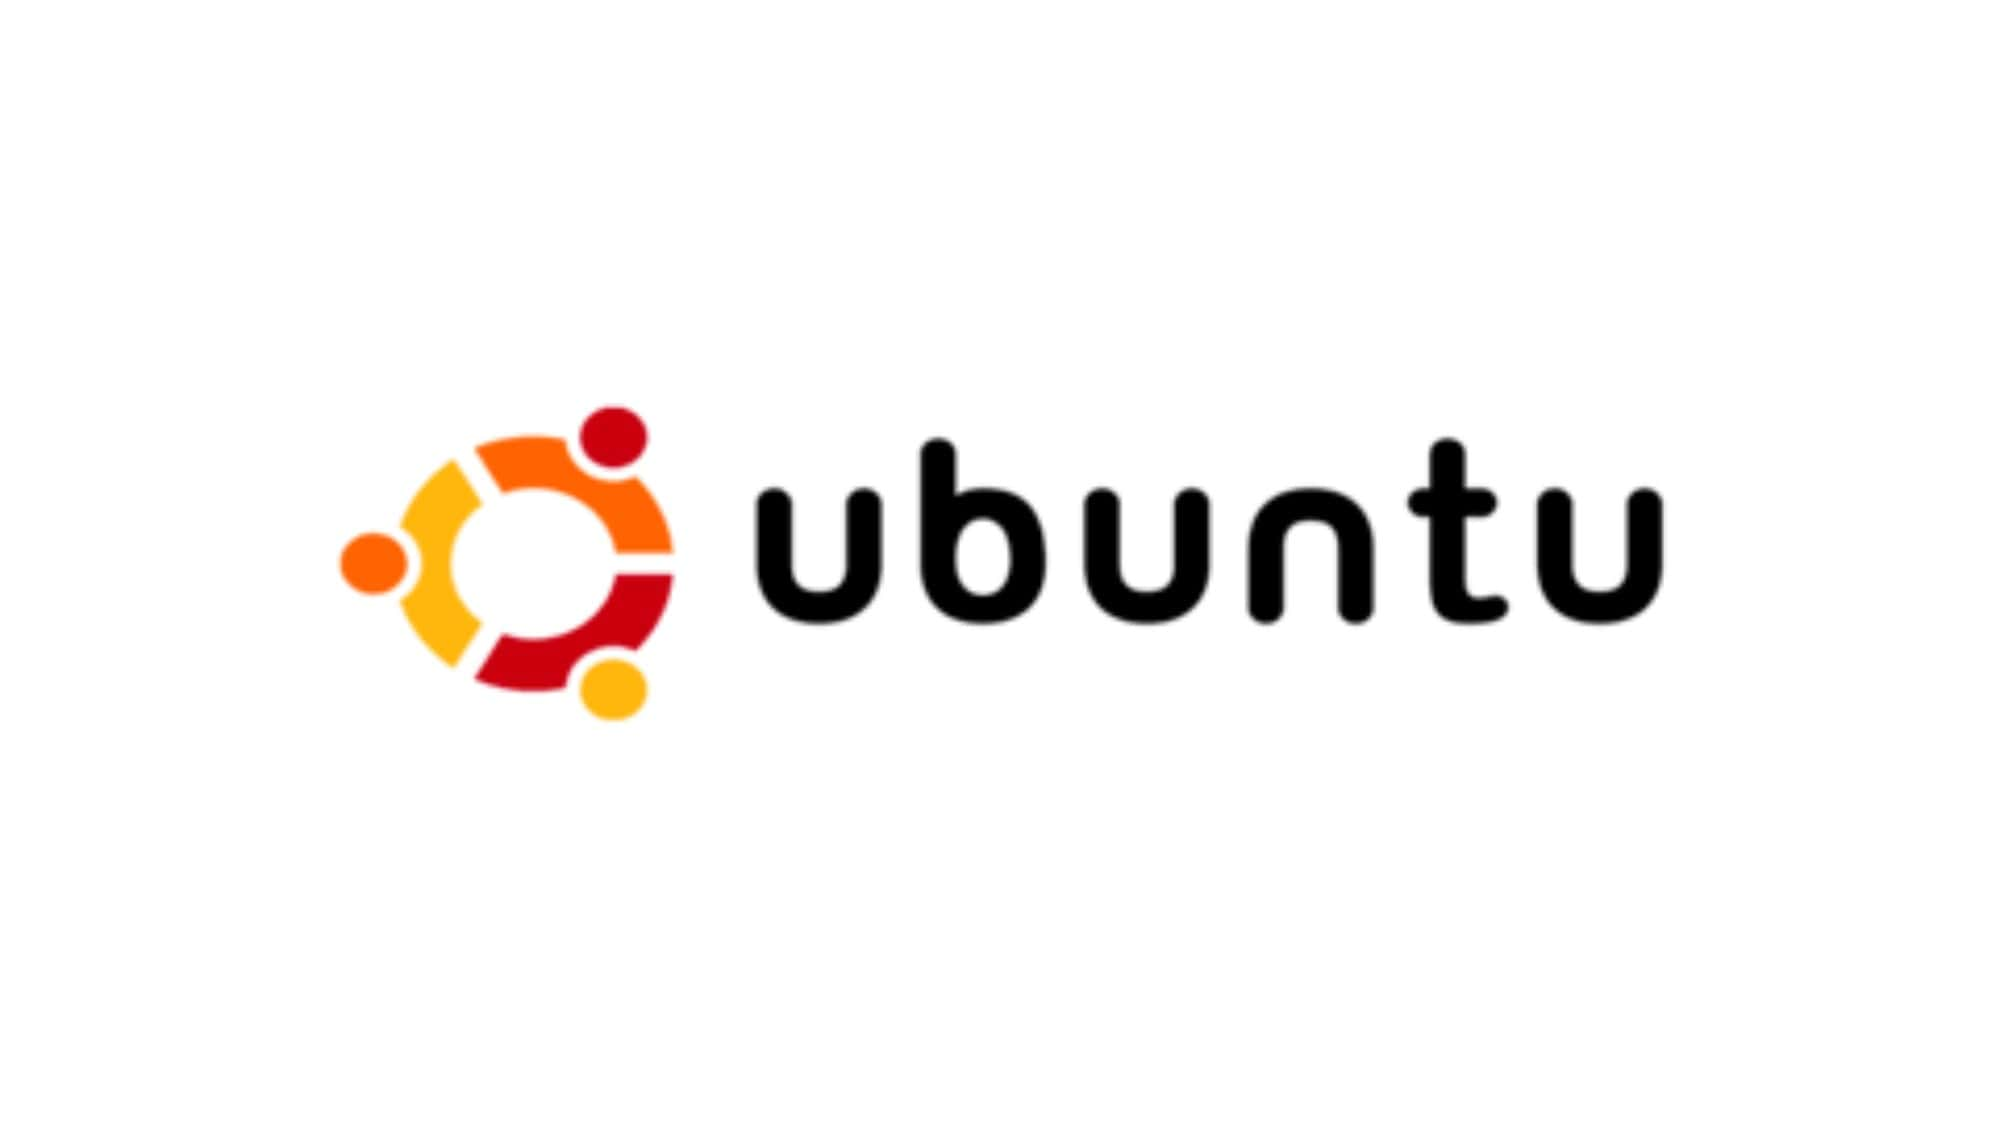 Come installare Foremost e recuperare i file cancellati su Ubuntu 18.04 LTS